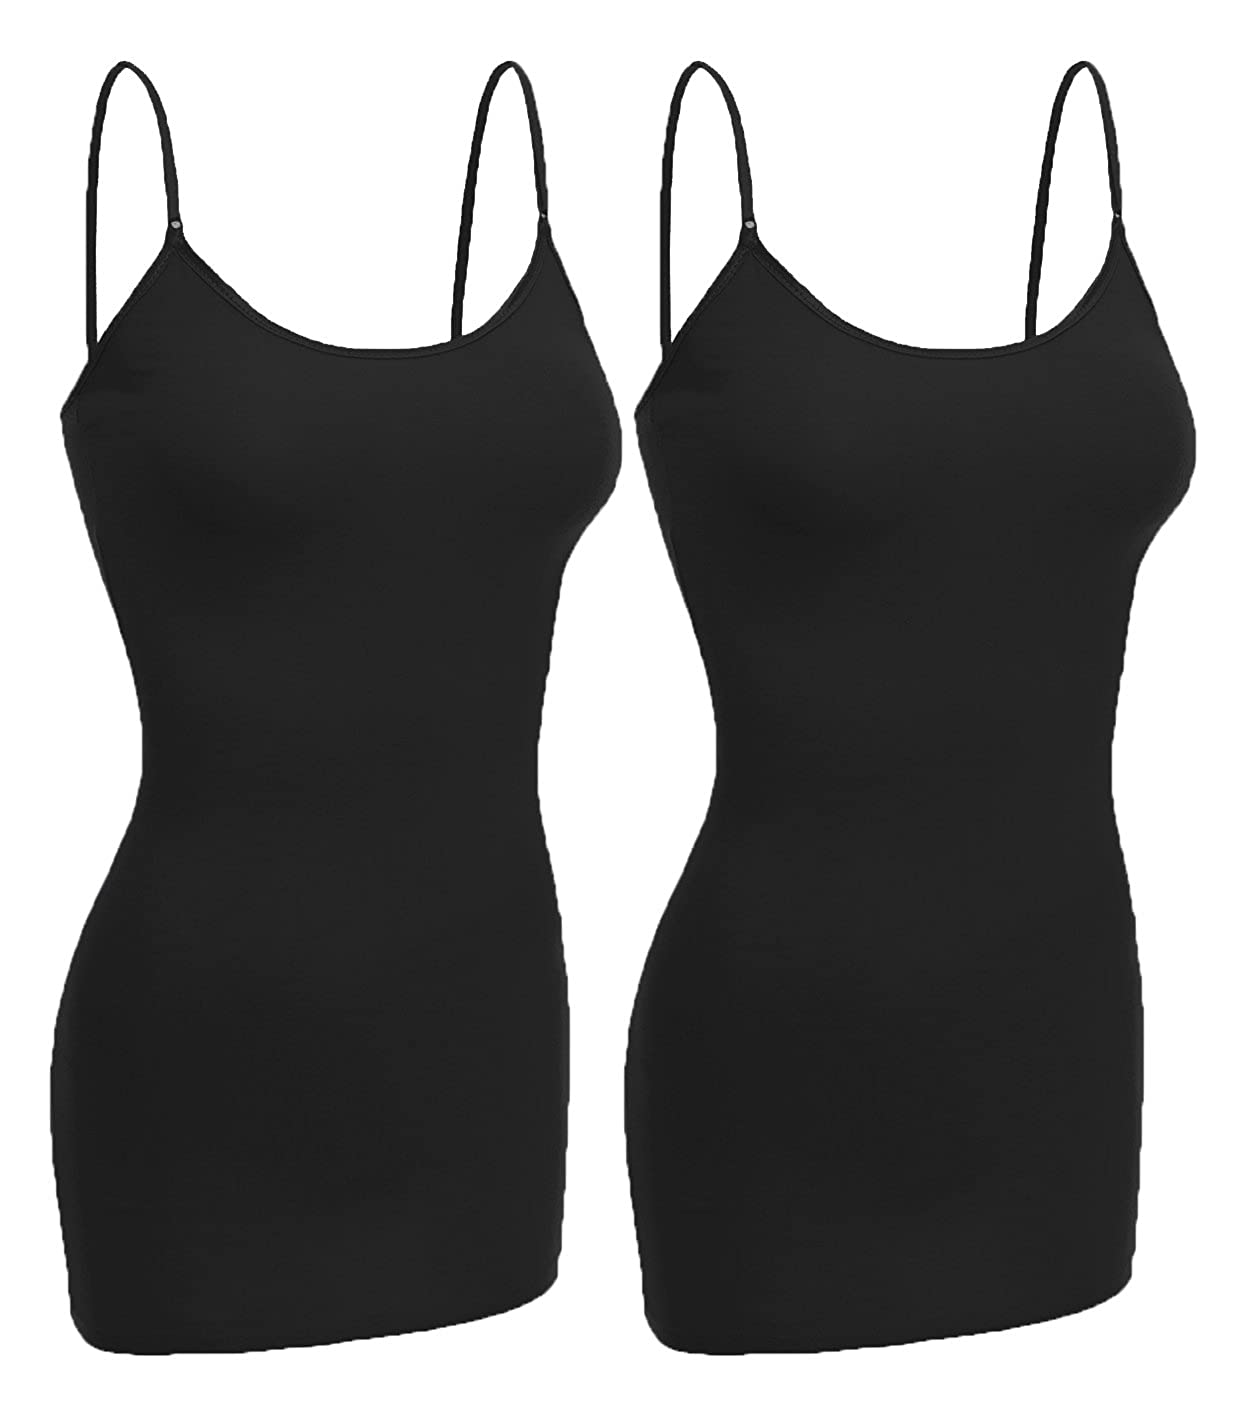 17004882593d7 Emmalise Women Basic Built in Bra Spaghetti Strap Layering Cami Top Tank -  Sml to 3XL at Amazon Women s Clothing store